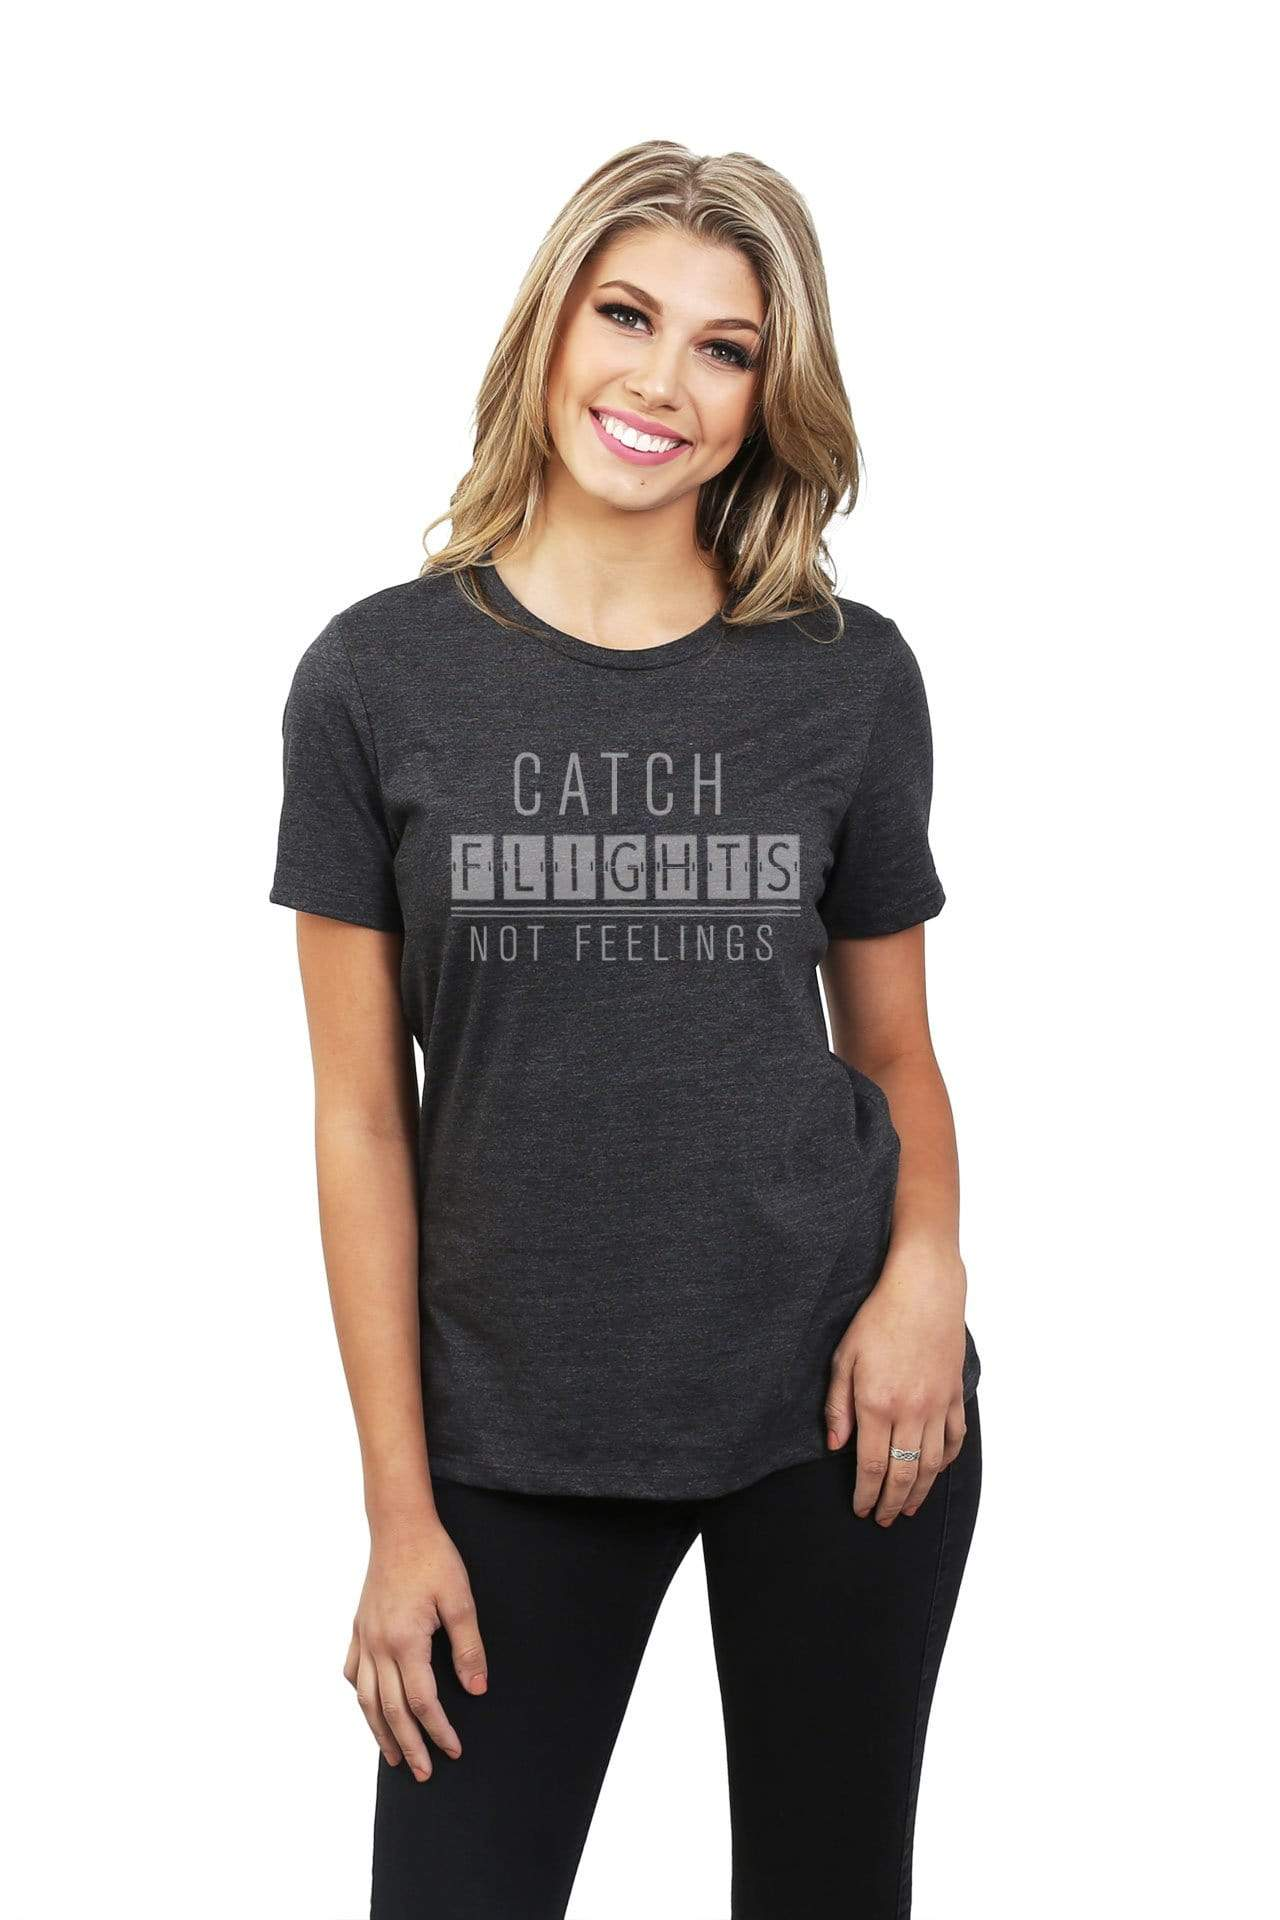 Catch Flights Not Feelings - Thread Tank | Stories You Can Wear | T-Shirts, Tank Tops and Sweatshirts